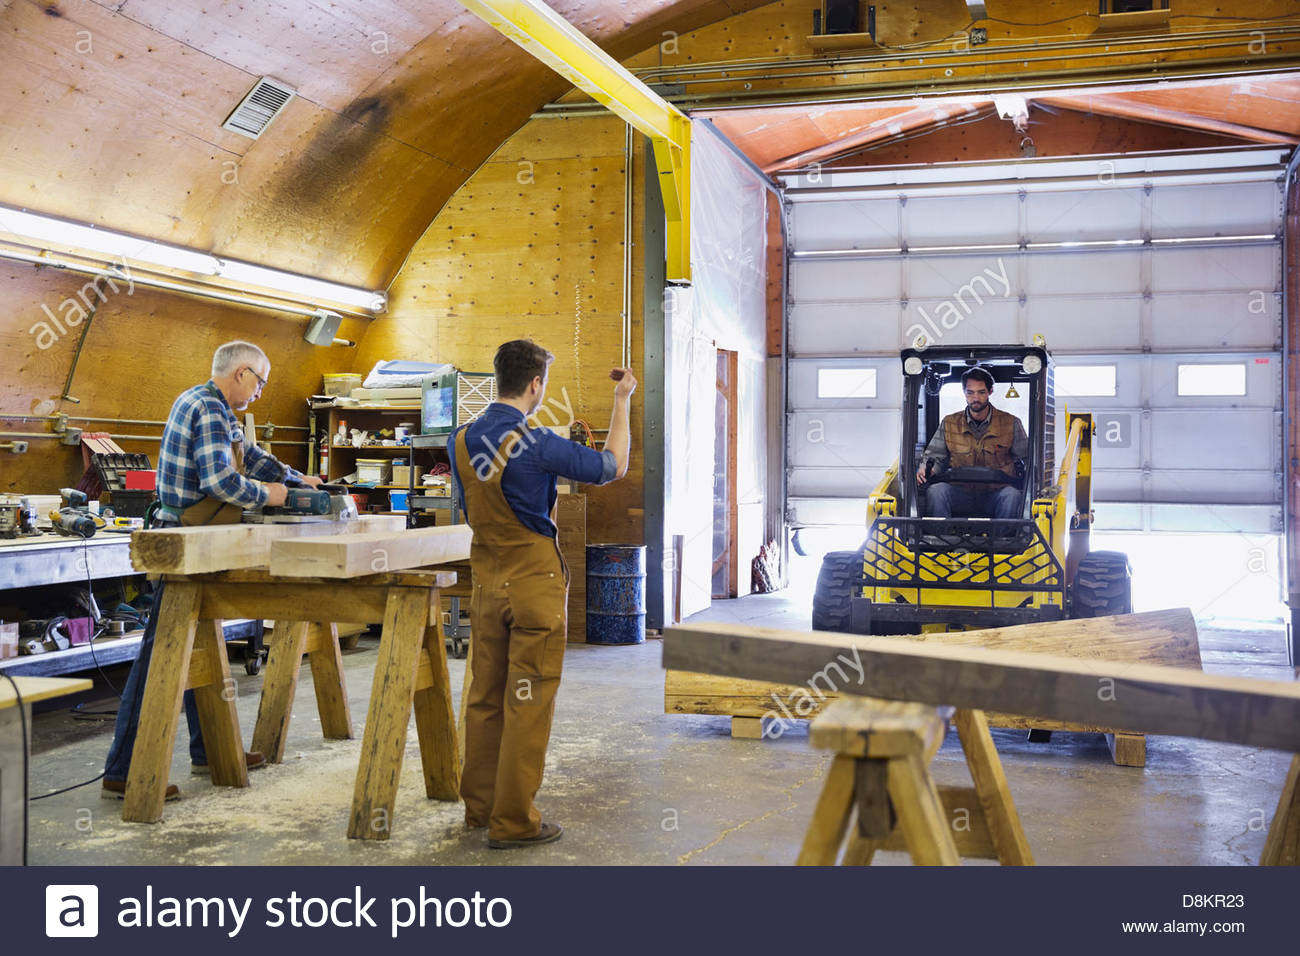 Carpenter driving forklift while coworker guides him - Stock Image